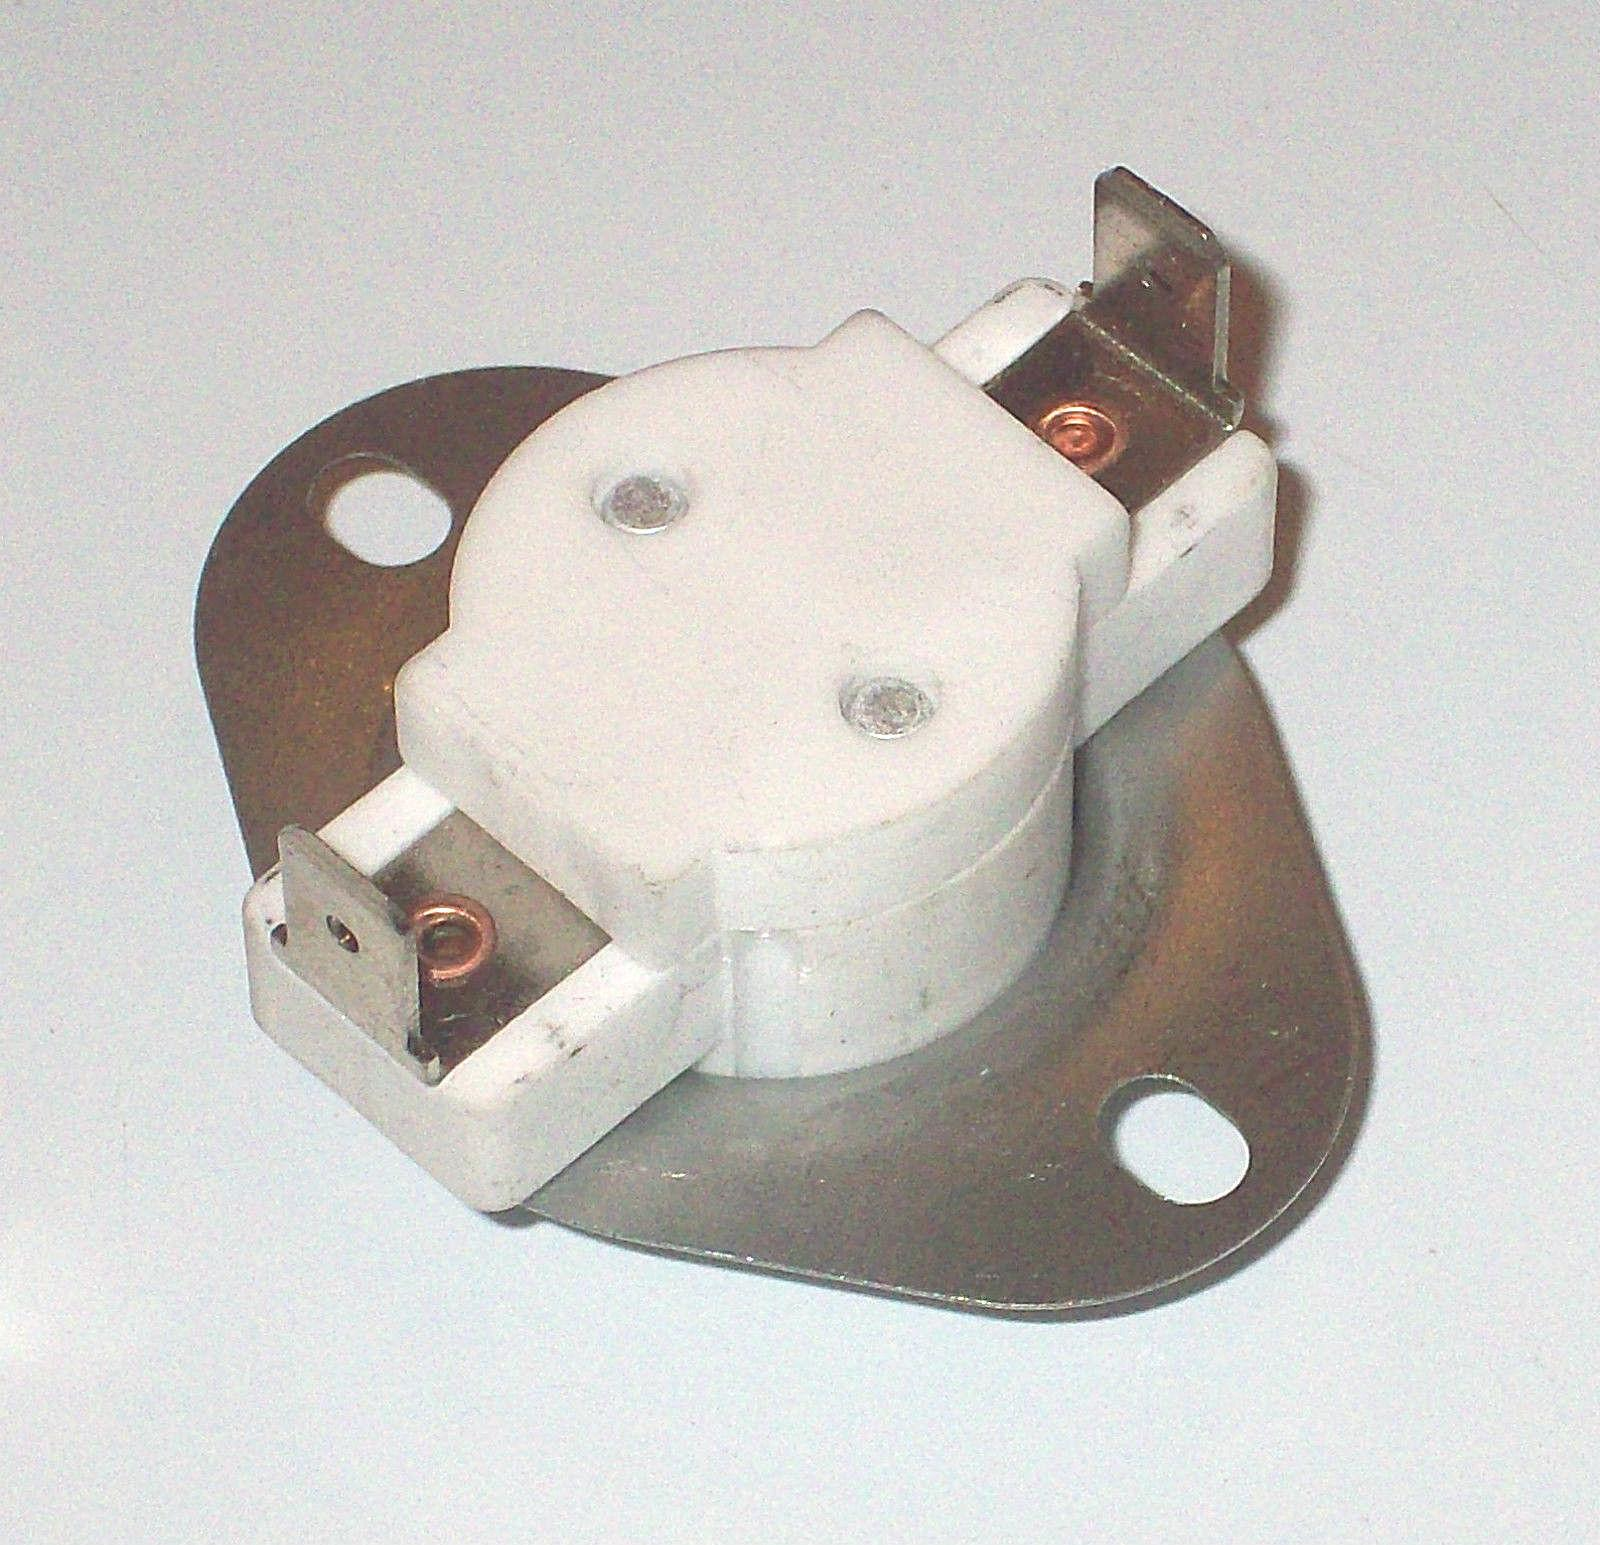 12720006 low limit switch for spirit 500